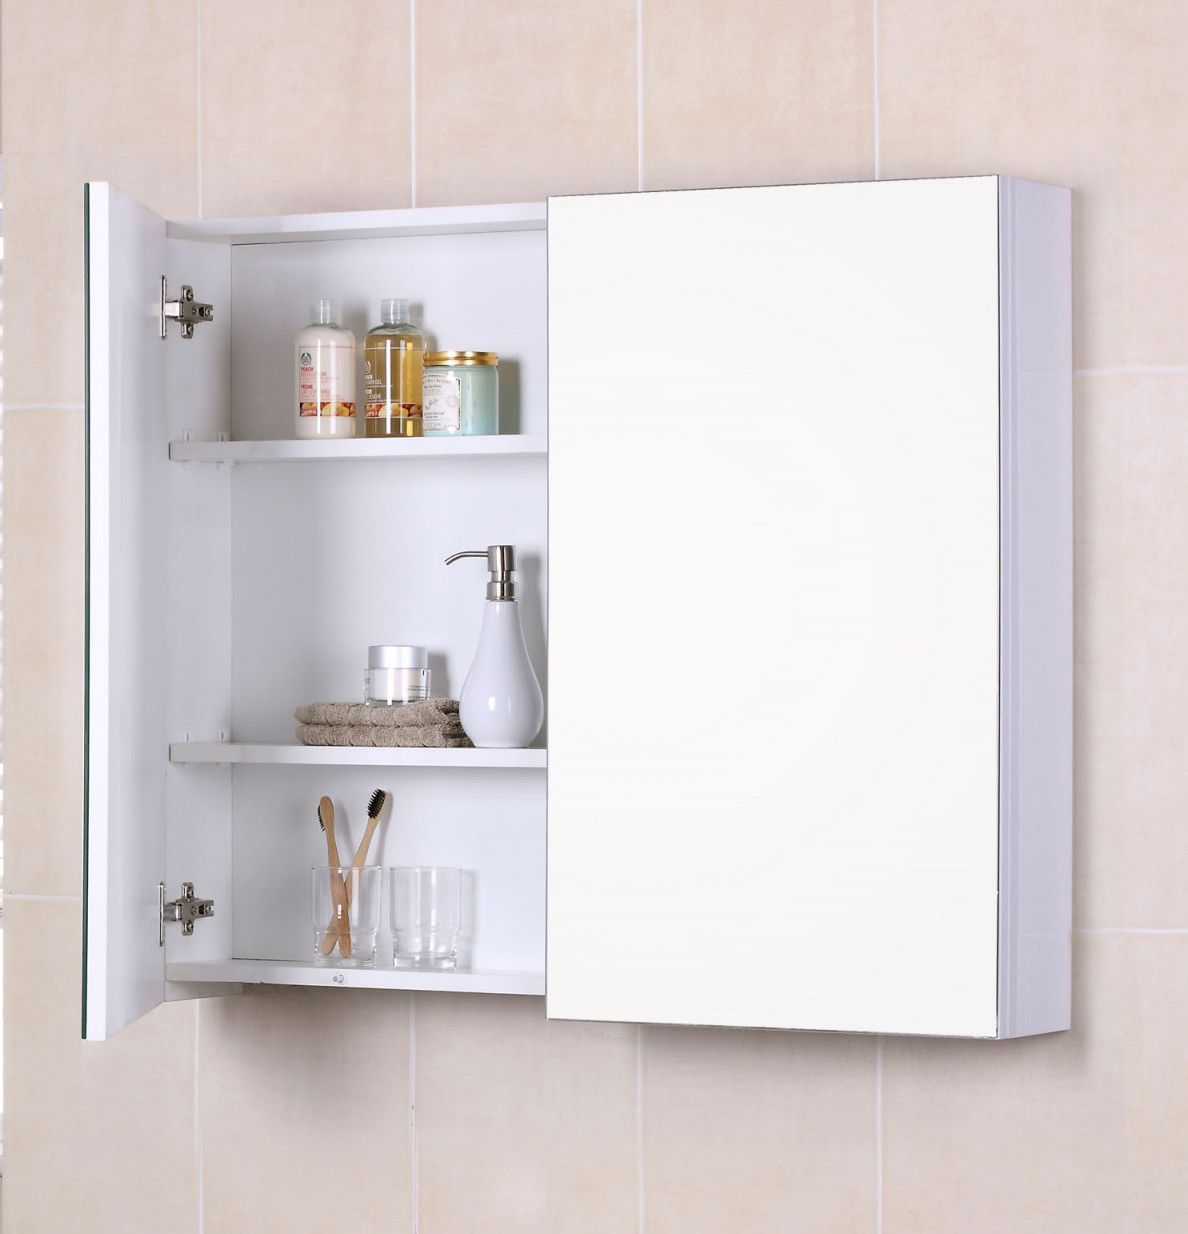 Bathroom Cabinet Storage Inserts 99+ bathroom cabinet shelf inserts - best interior paint brands